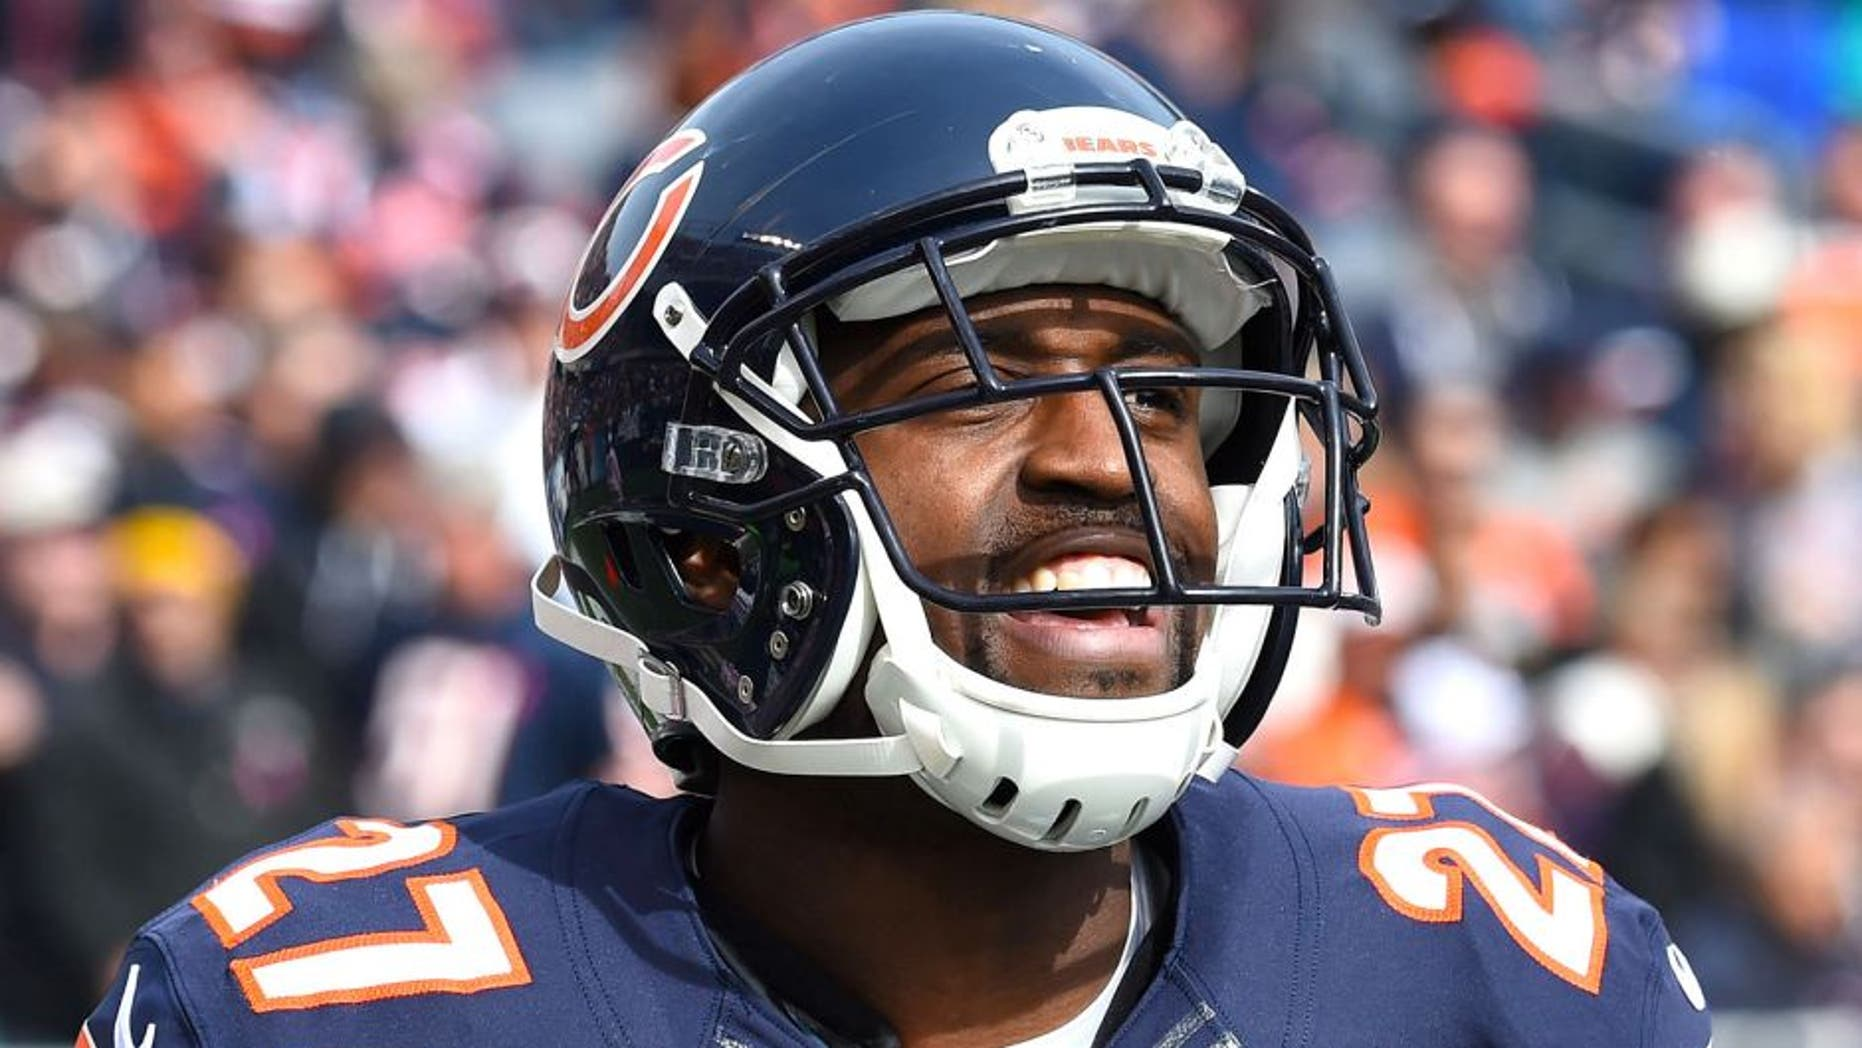 Oct 19, 2014; Chicago, IL, USA; Chicago Bears cornerback Sherrick McManis (27) during the first quarter at Soldier Field. Mandatory Credit: Mike DiNovo-USA TODAY Sports